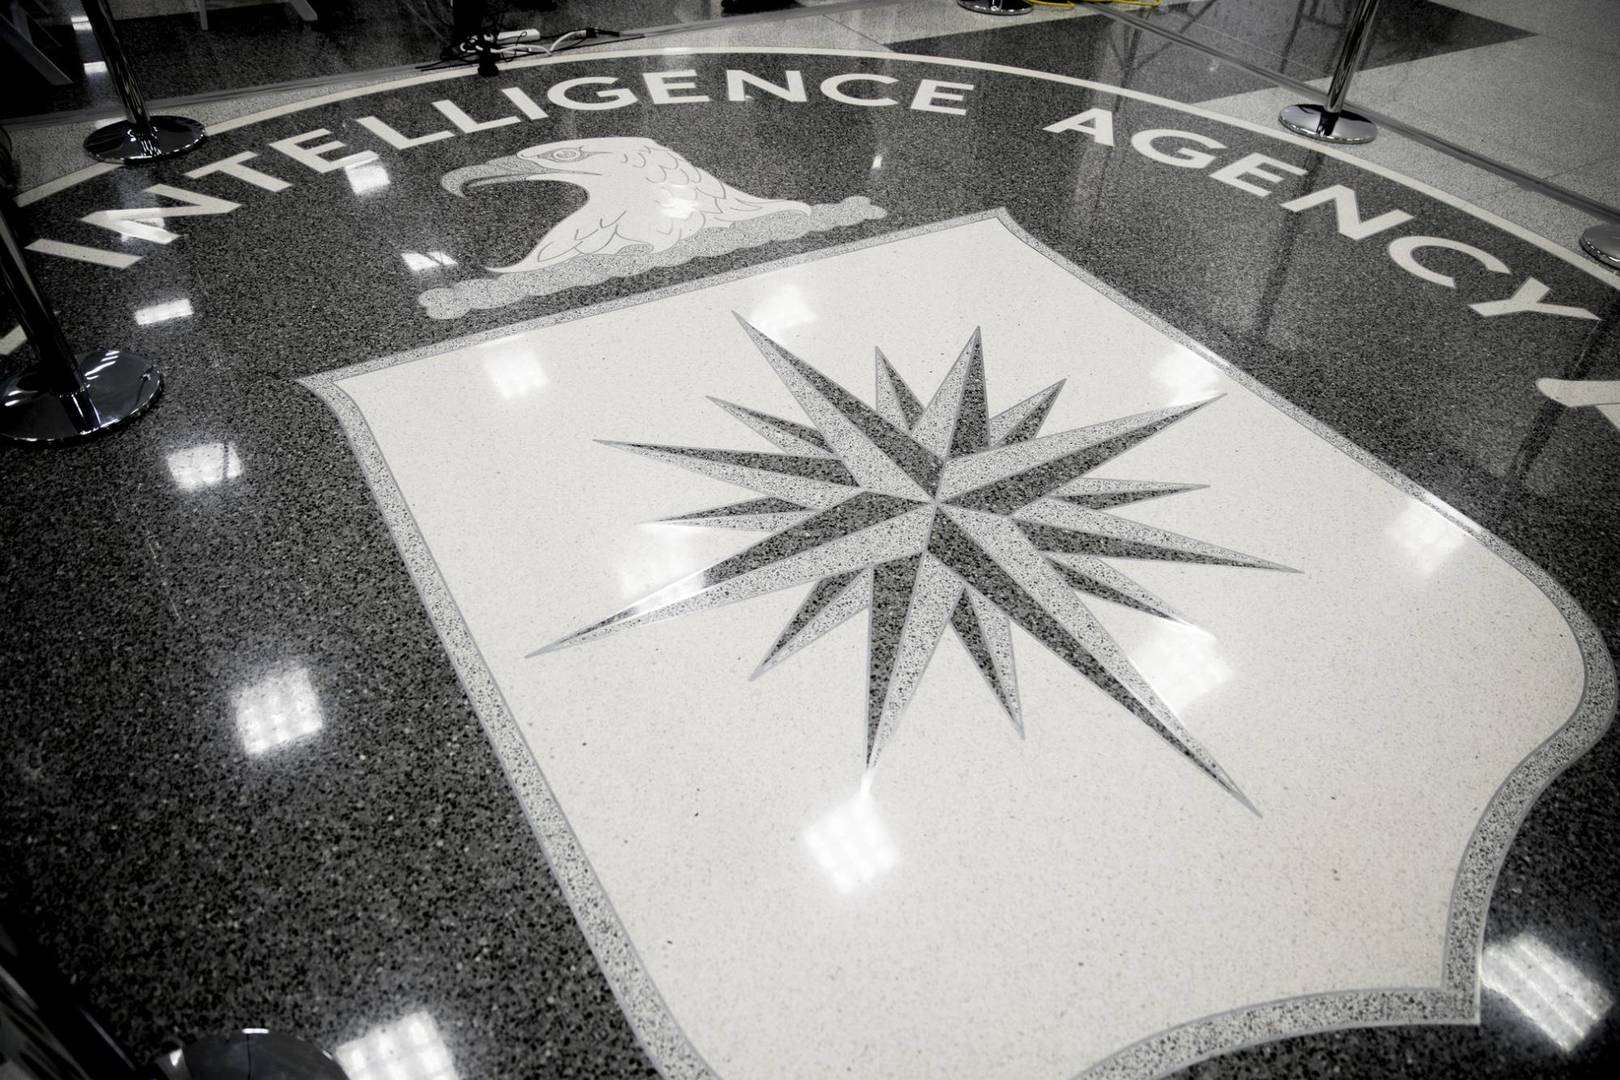 """FILE- This Jan. 21, 2017, file photo shows the floor of the main lobby of the Central Intelligence Agency in Langley, Va. The FBI """"exercised remarkable caution and candor"""" in securing search warrants that led to espionage charges against a former CIA employee, prosecutors have told a federal judge presiding over the case. Prosecutors said a court hearing is not necessary to reject Joshua Adam Schulte's claims that evidence should be tossed out because searches of his New York City residence and various electronic accounts were illegal. (AP Photo/Andrew Harnik, File)"""